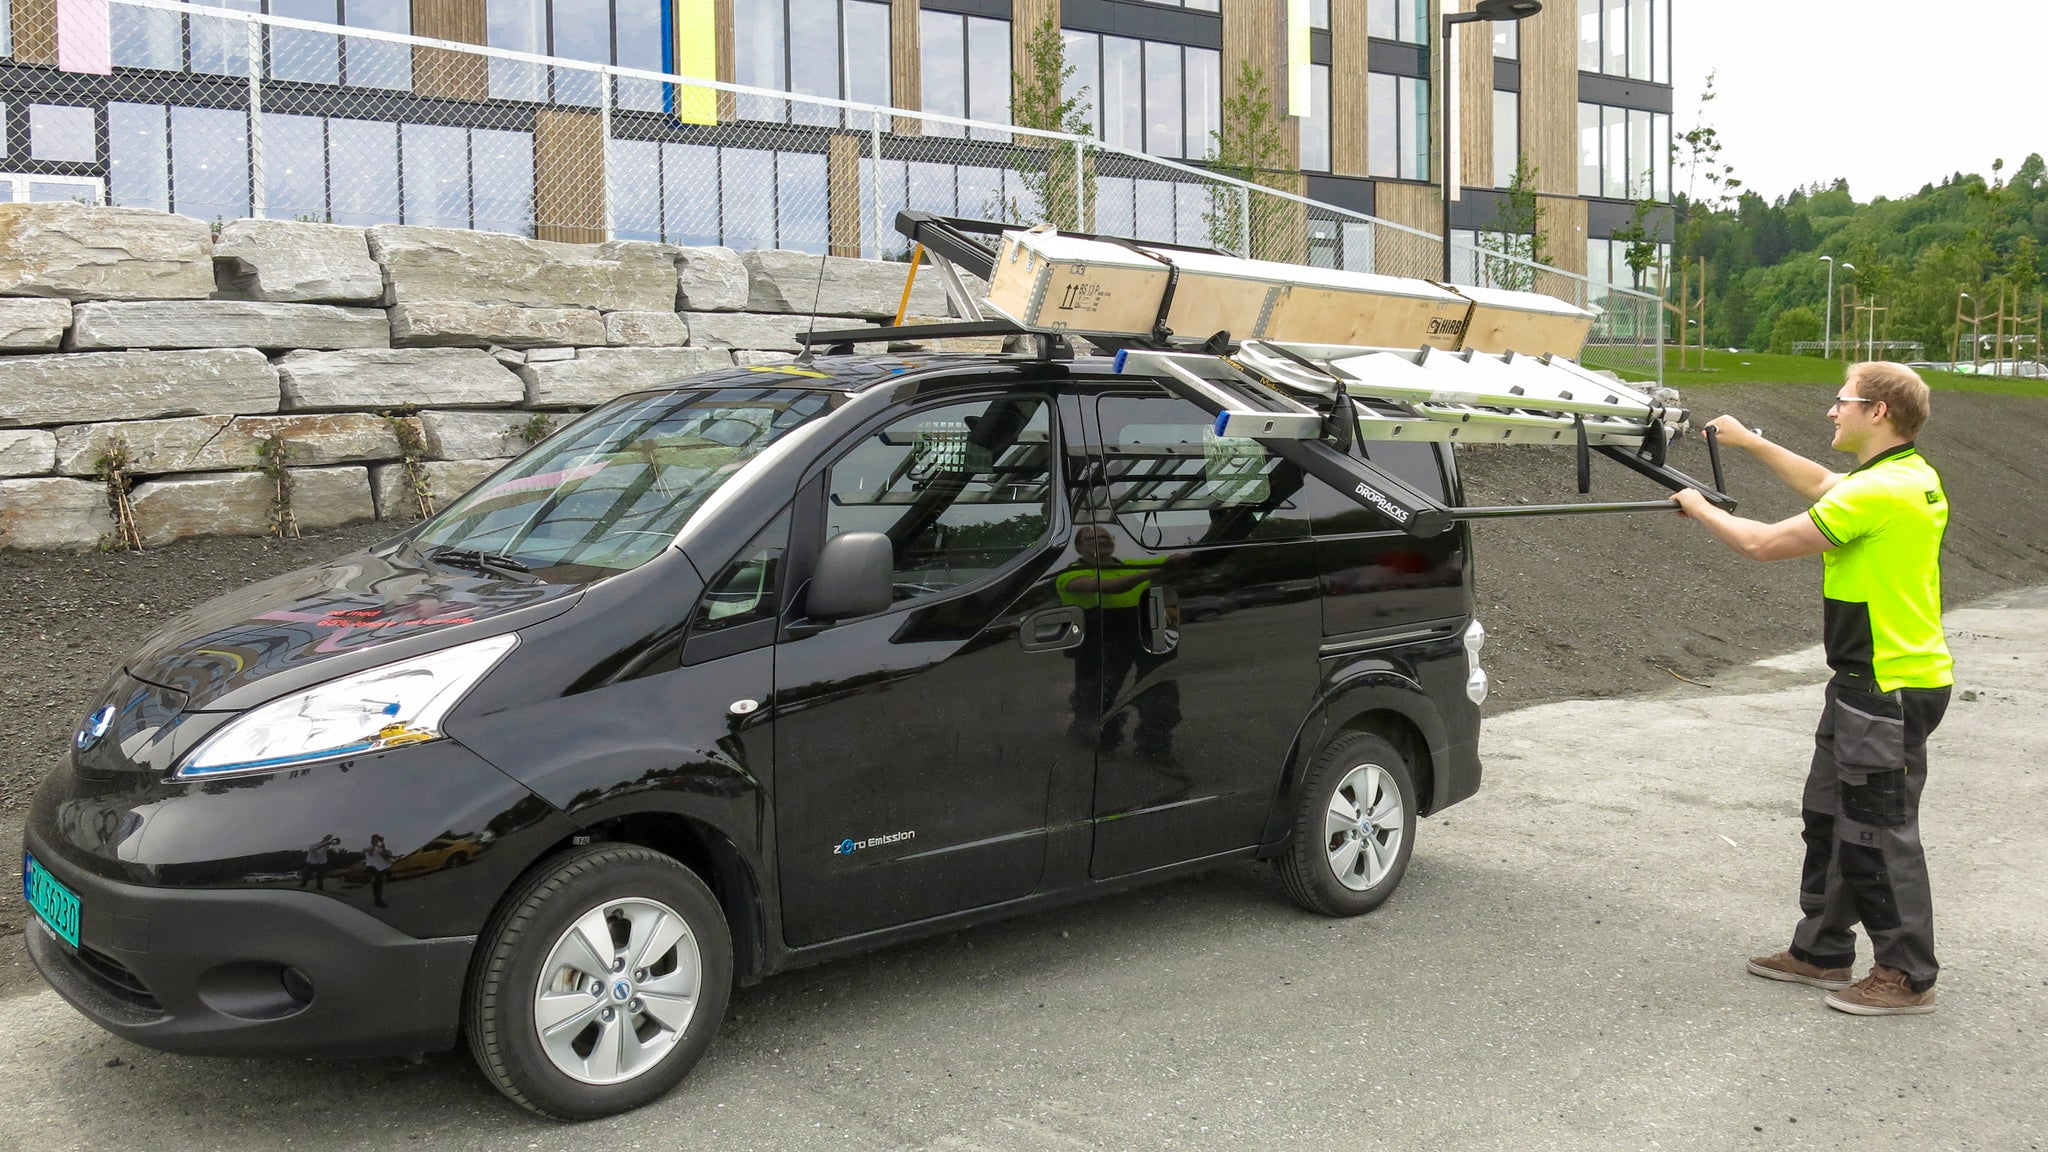 Dropracks Black XL Roof rack on Nissan ENV200 LCV commercial van with fix point